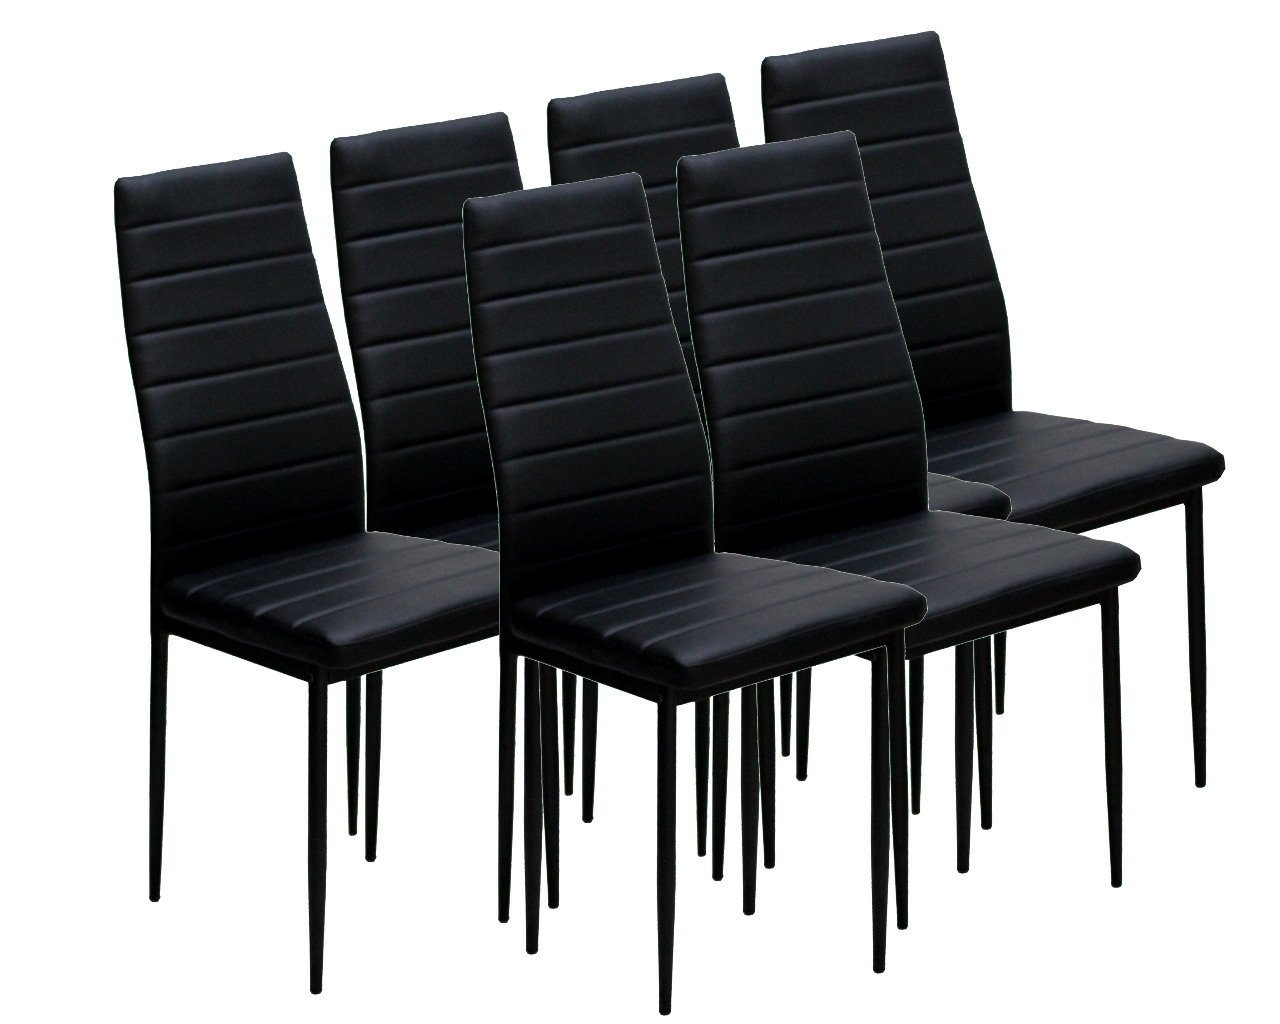 IDS Online 6 PCS Set Modern Style PU Leather Dining Side Chair with Foot Pad Black by IDS Online (Image #4)